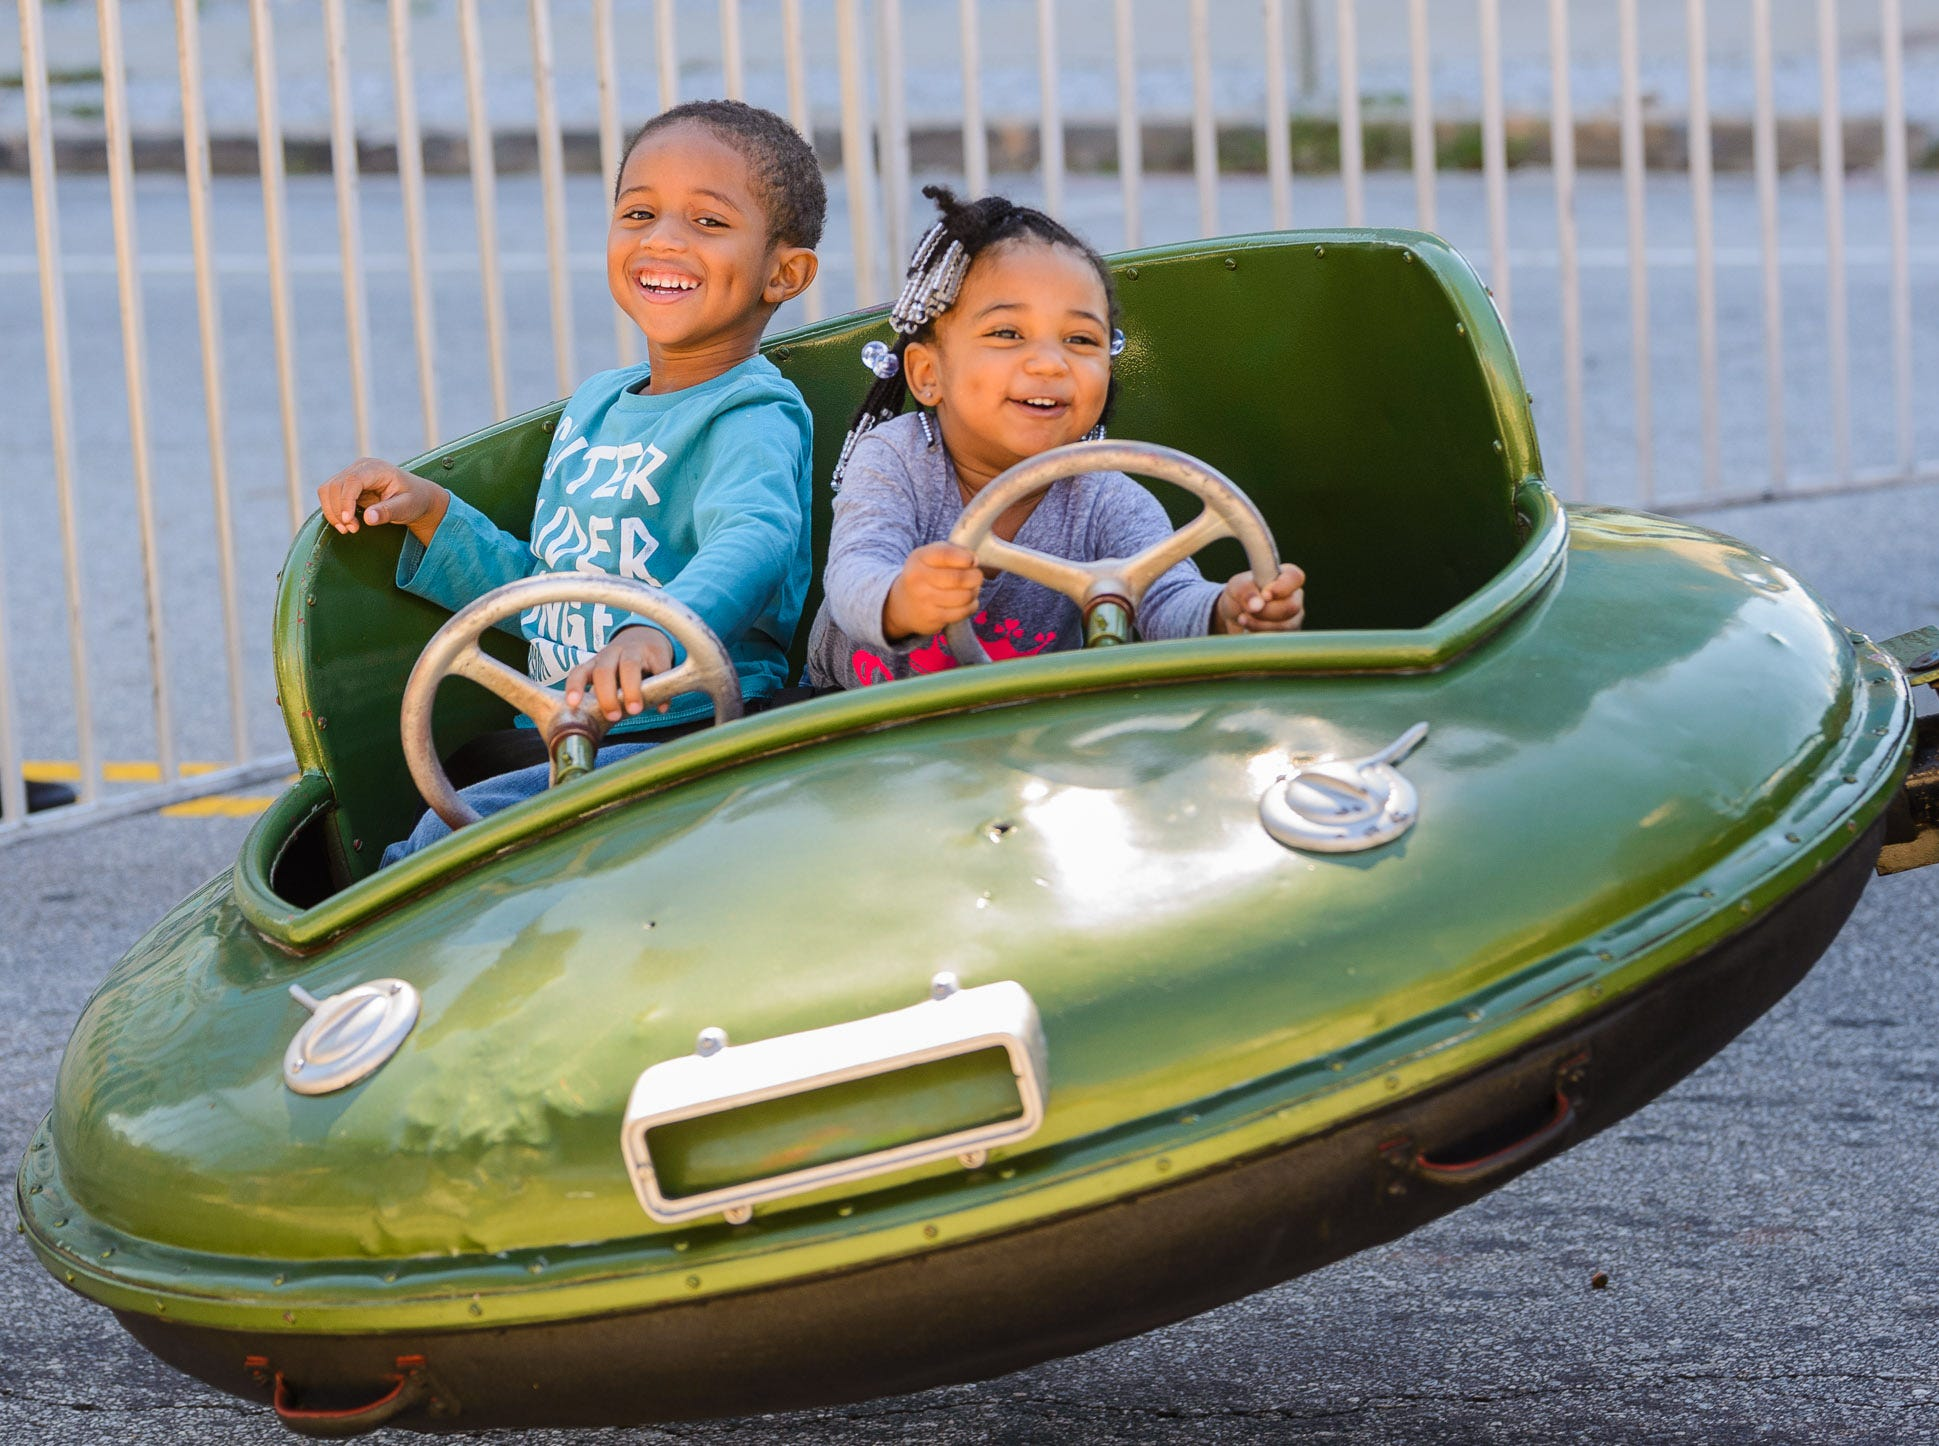 4 year old Cavin Fuller (left) and his 3 year old sister Cy have fun riding in the Spaceships at Fall for Greenville in Downtown Greenville on Saturday, October 12, 2018.